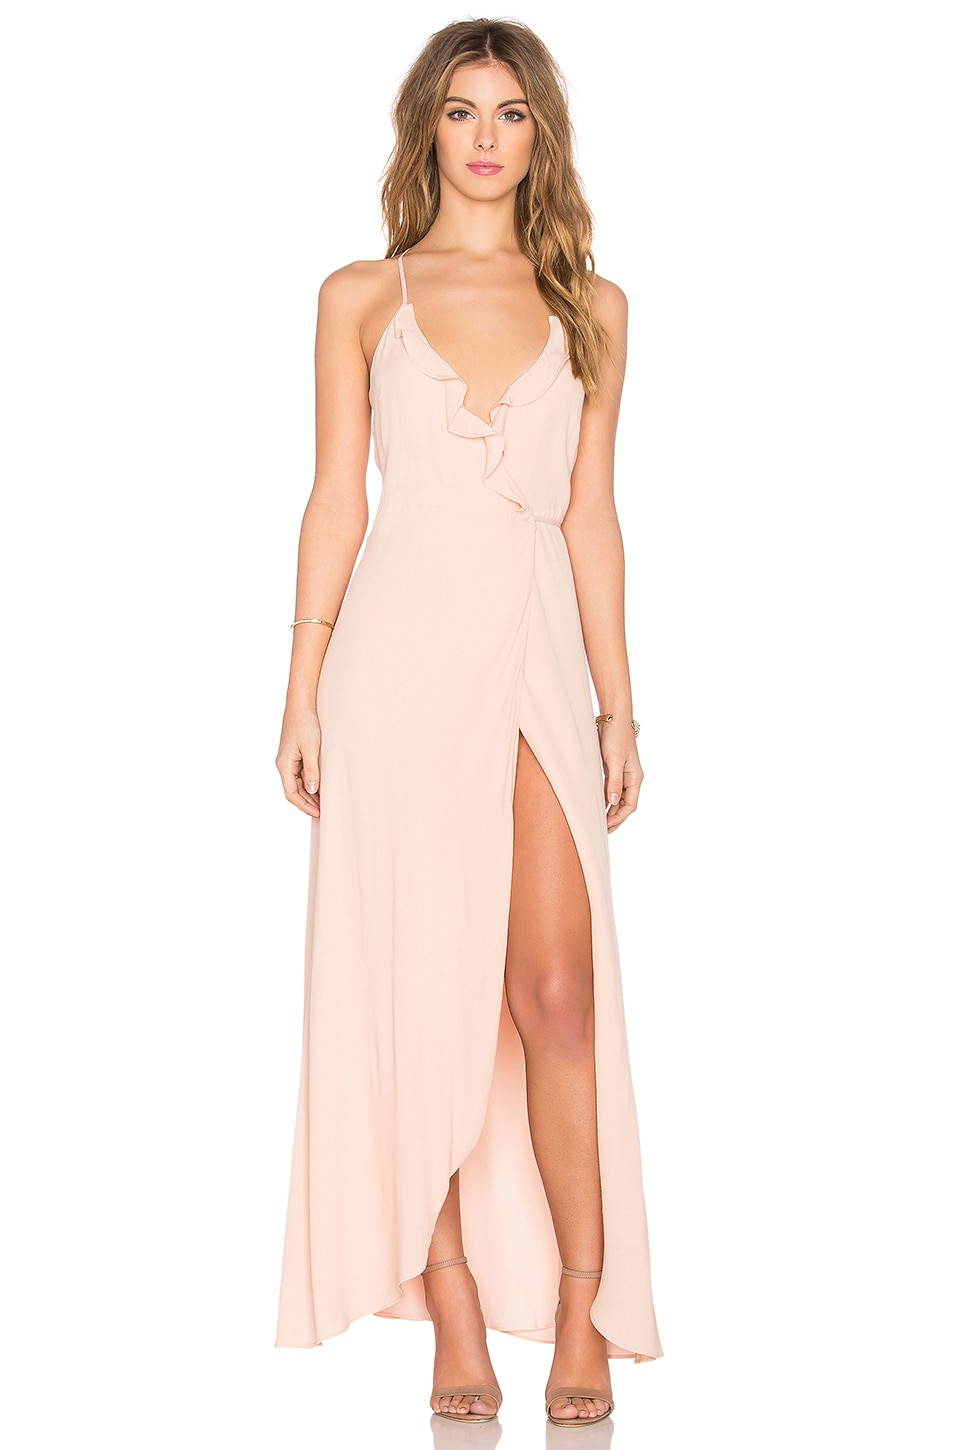 Lovers + Friends x REVOLVE Nostalgia Maxi Dress in Nude